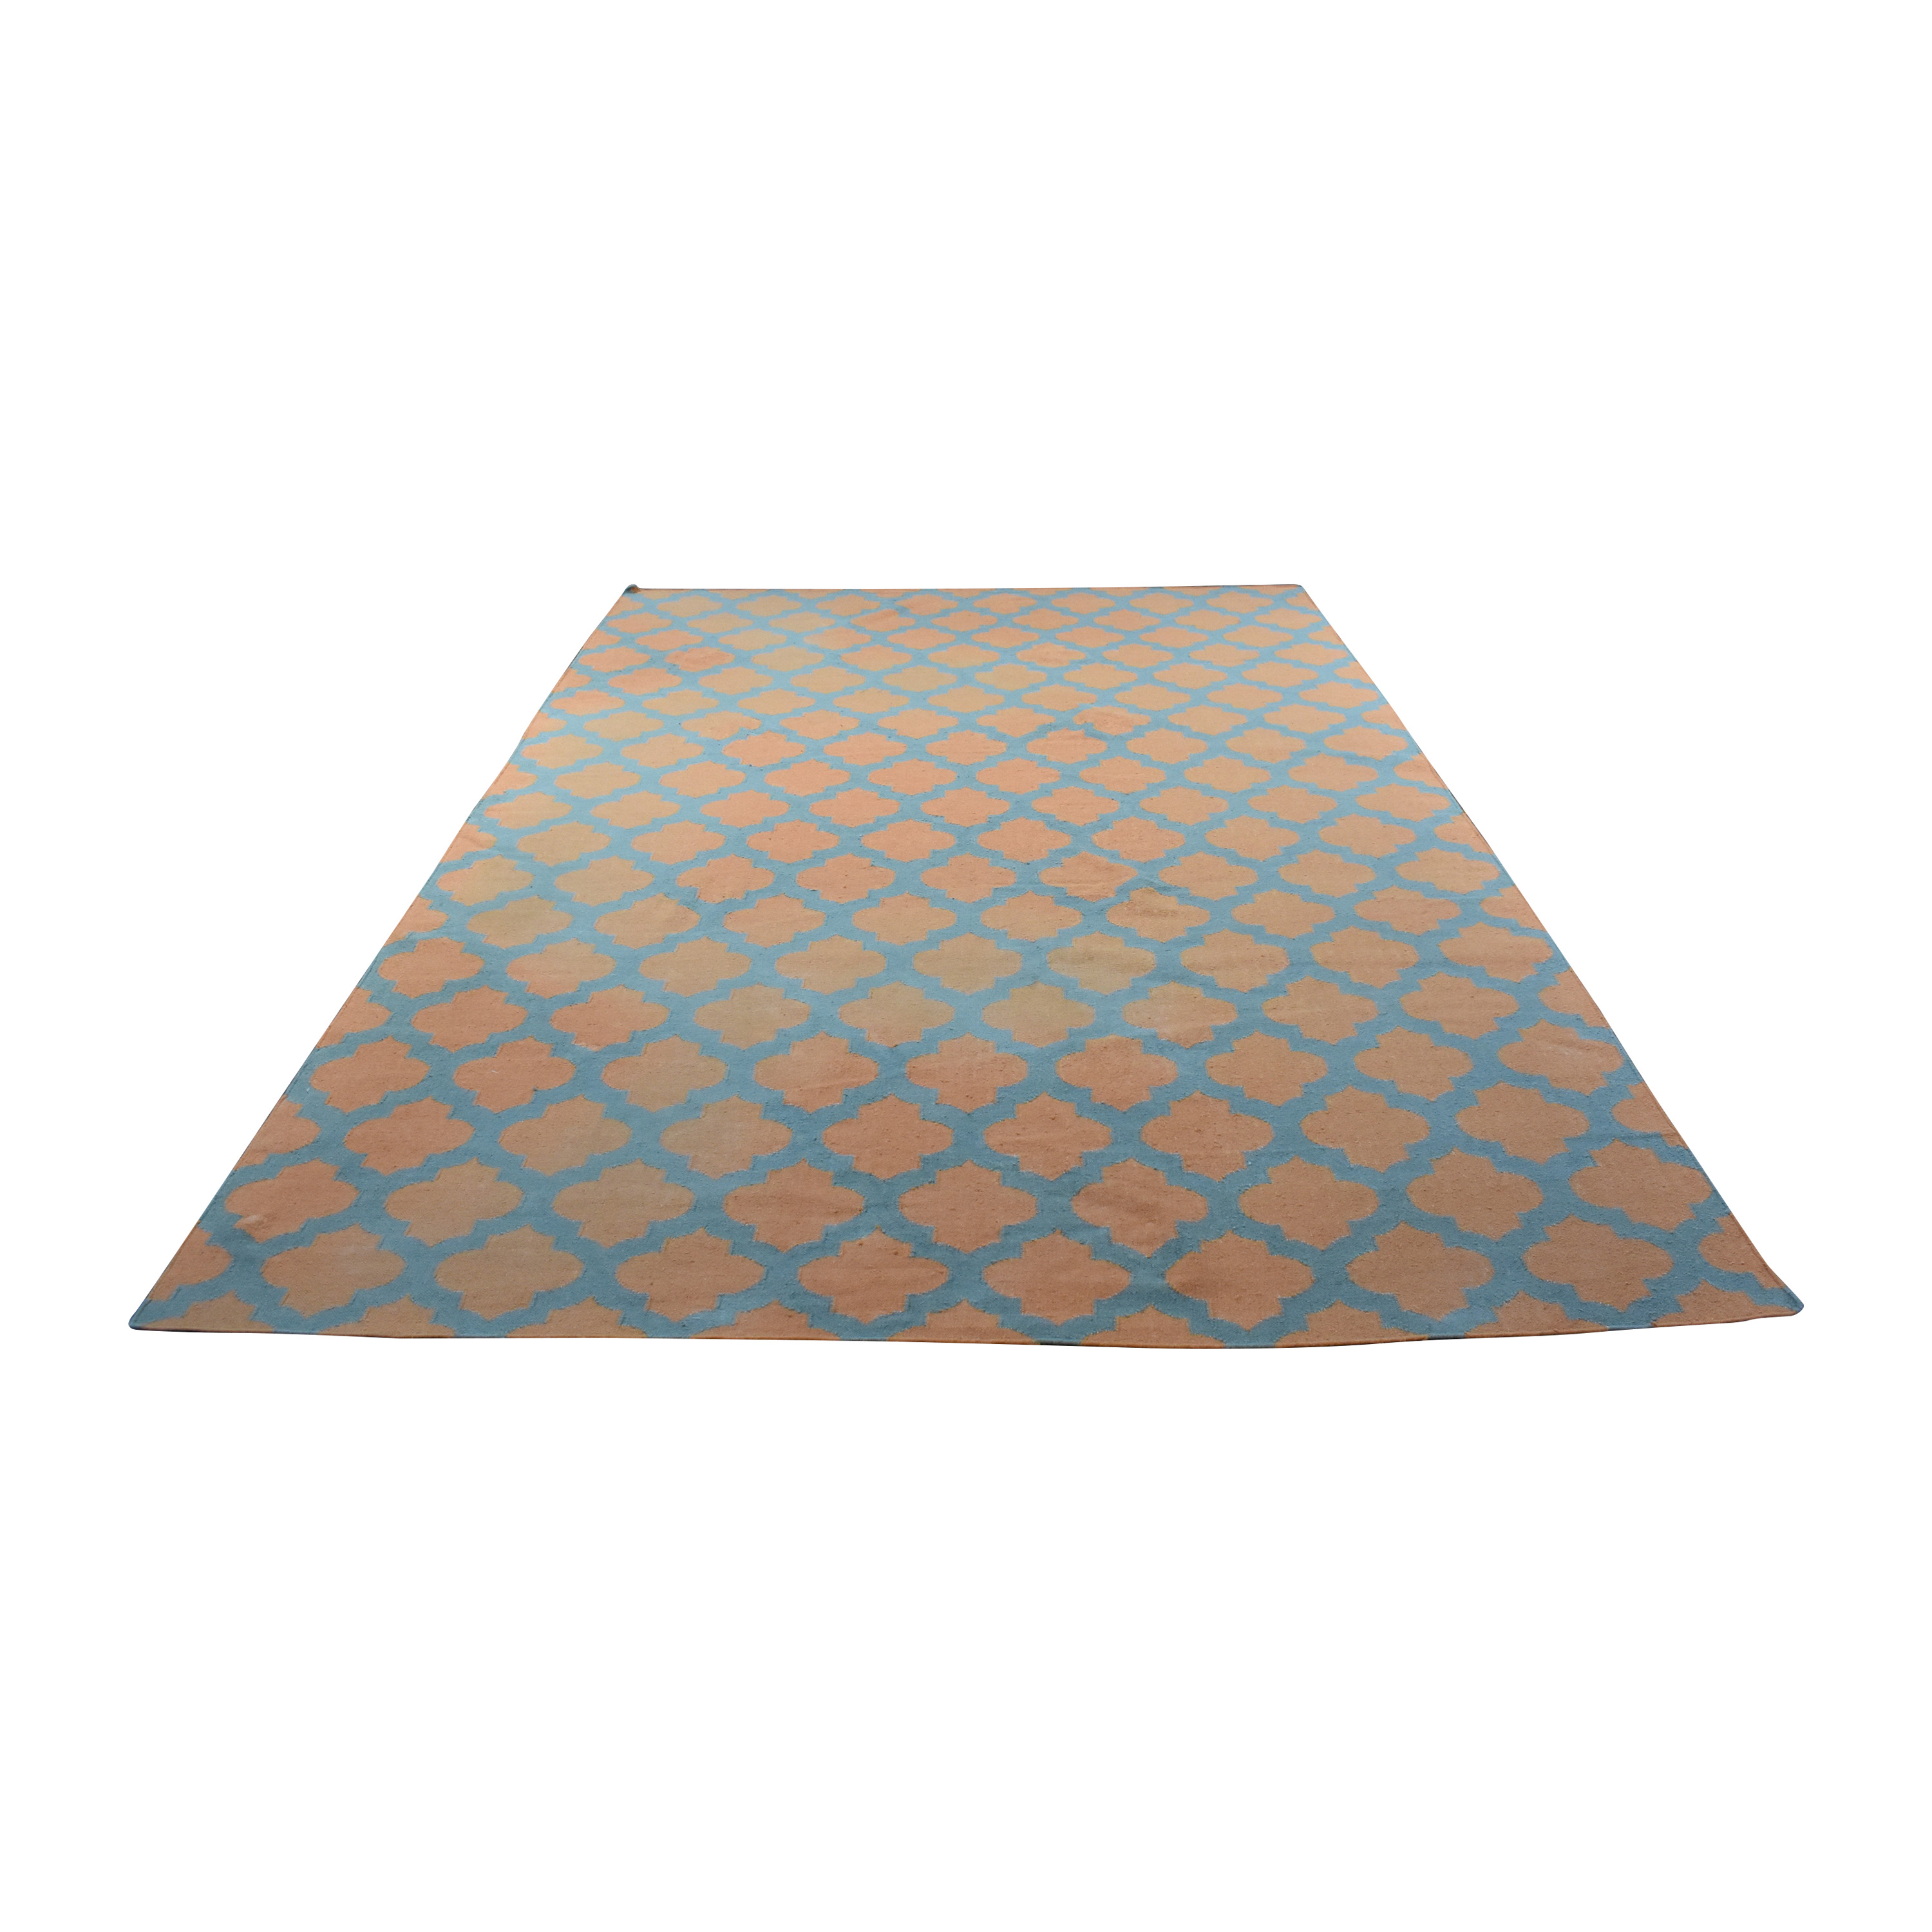 Patterned Area Rug on sale